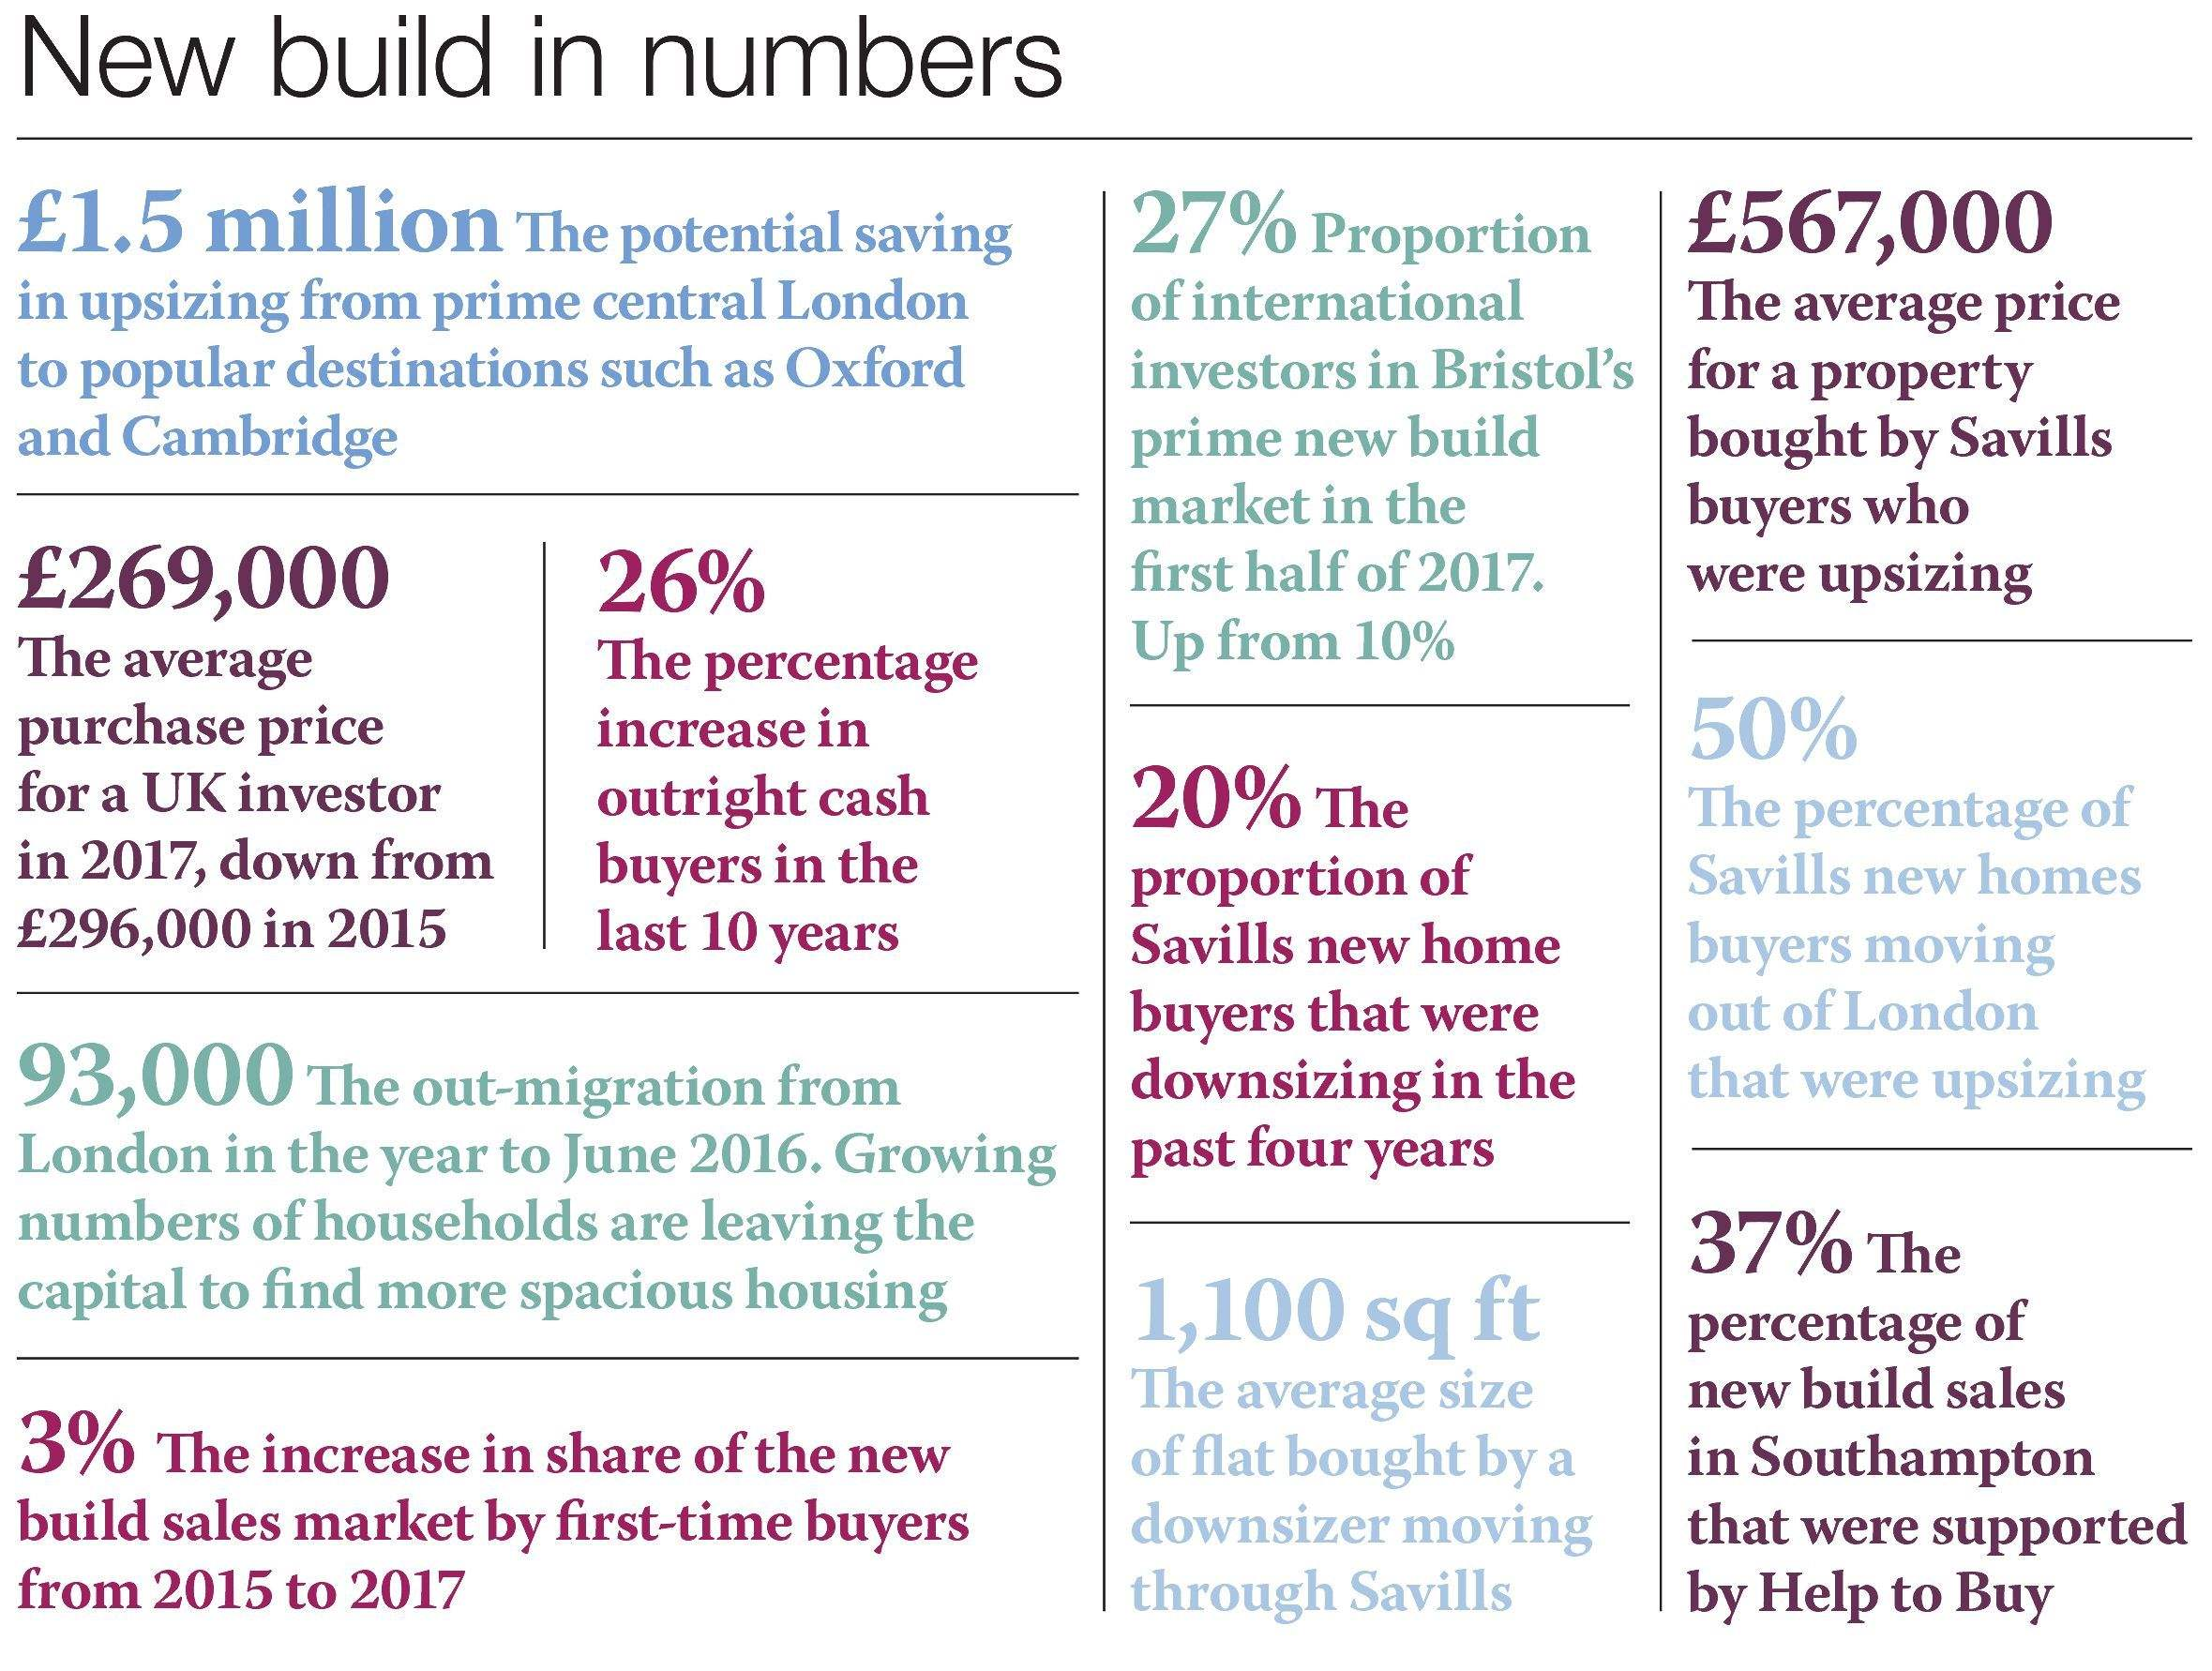 New build in numbers